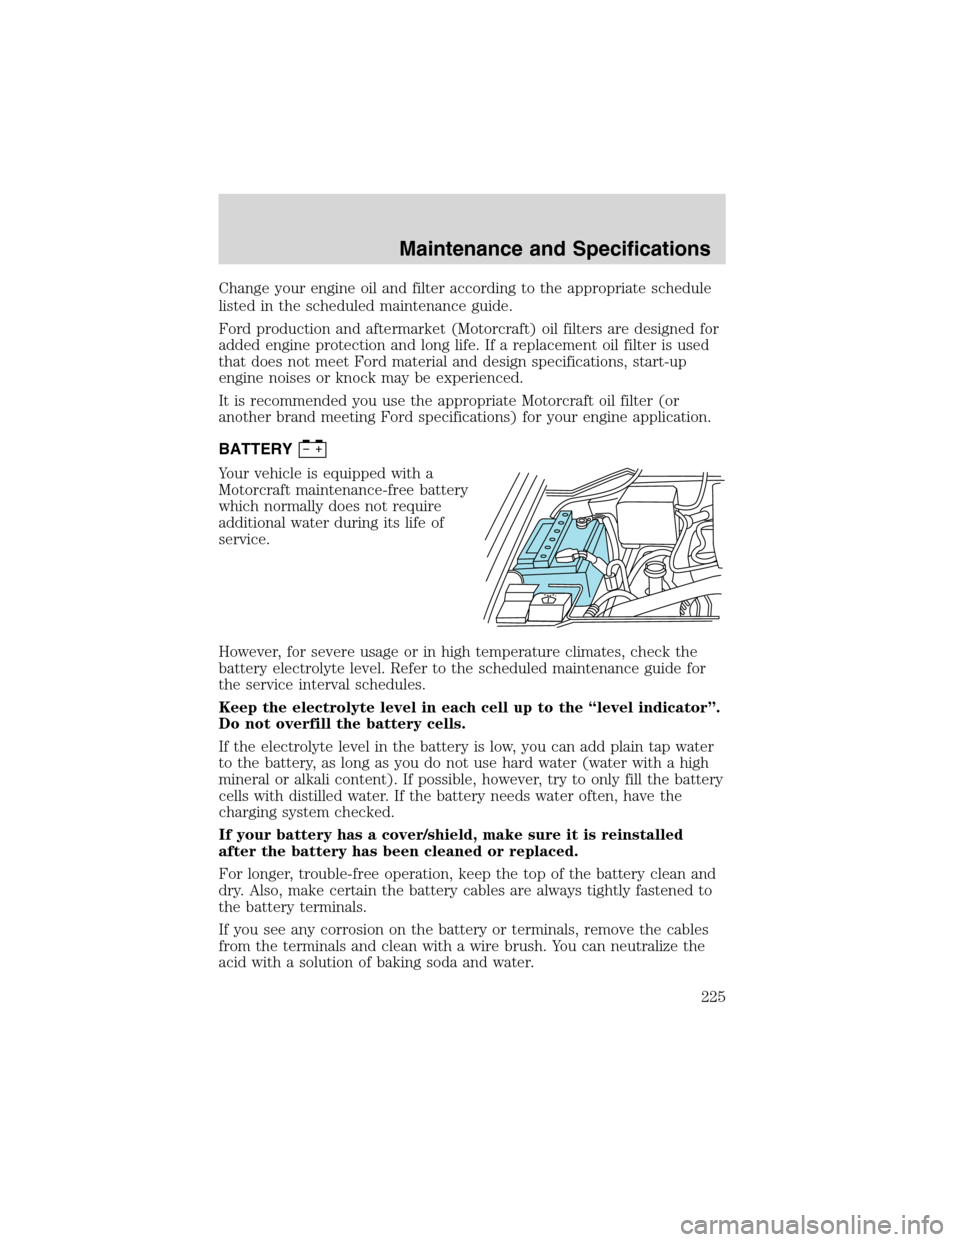 Oil Filter Ford F150 2003 10g Owners Manual F 150 4 6l Engine Diagram Dip Sticks Page 225